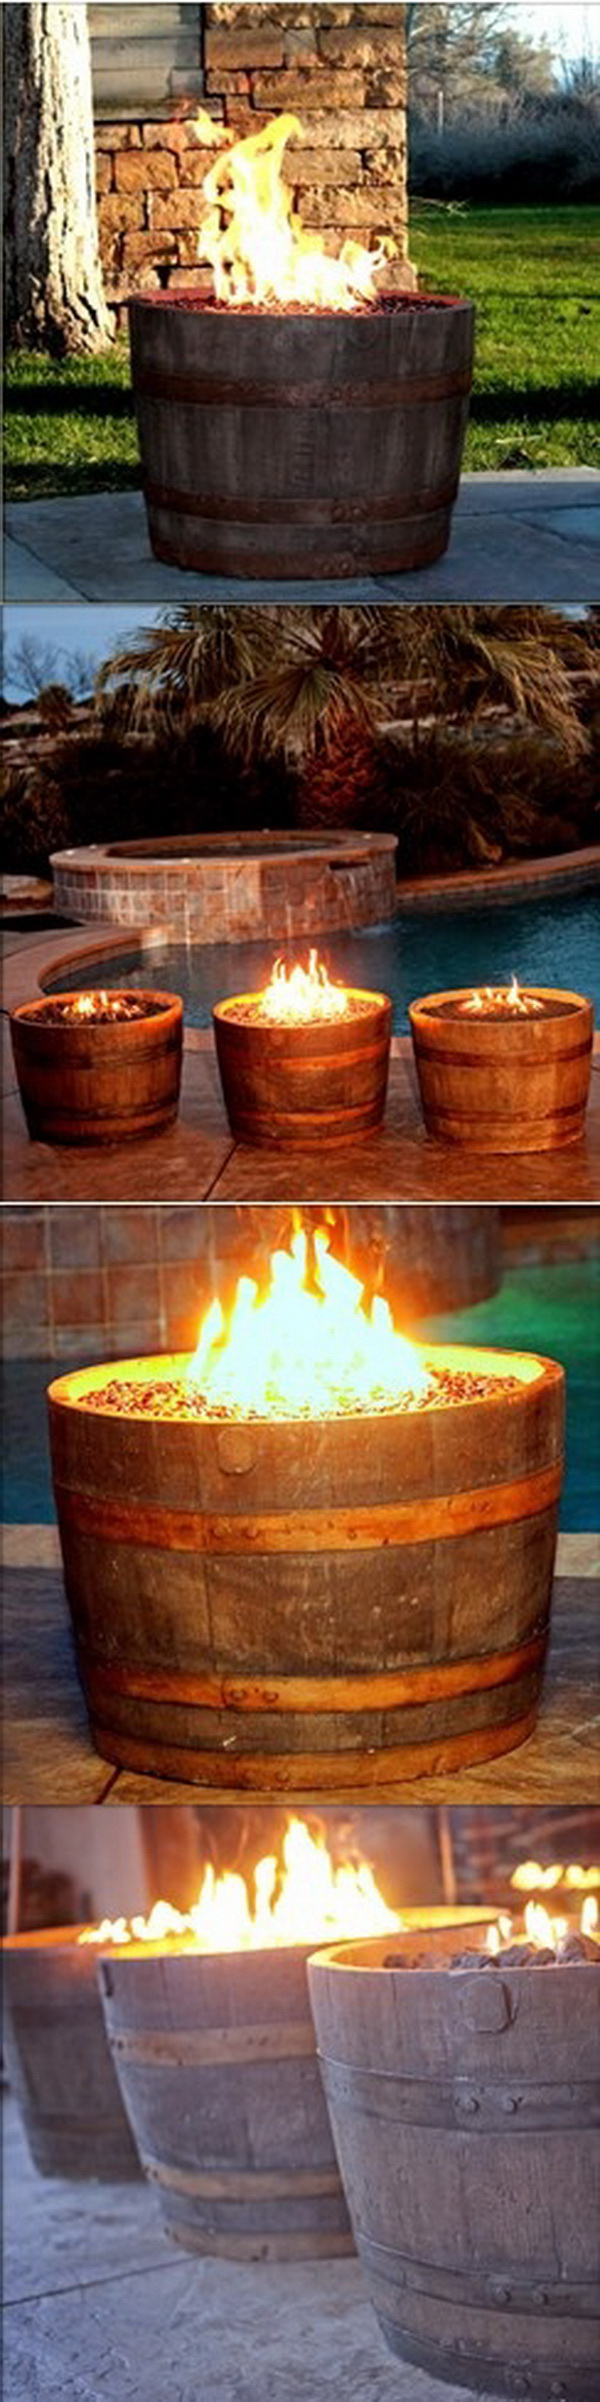 Wine Barrel Fire Pit.